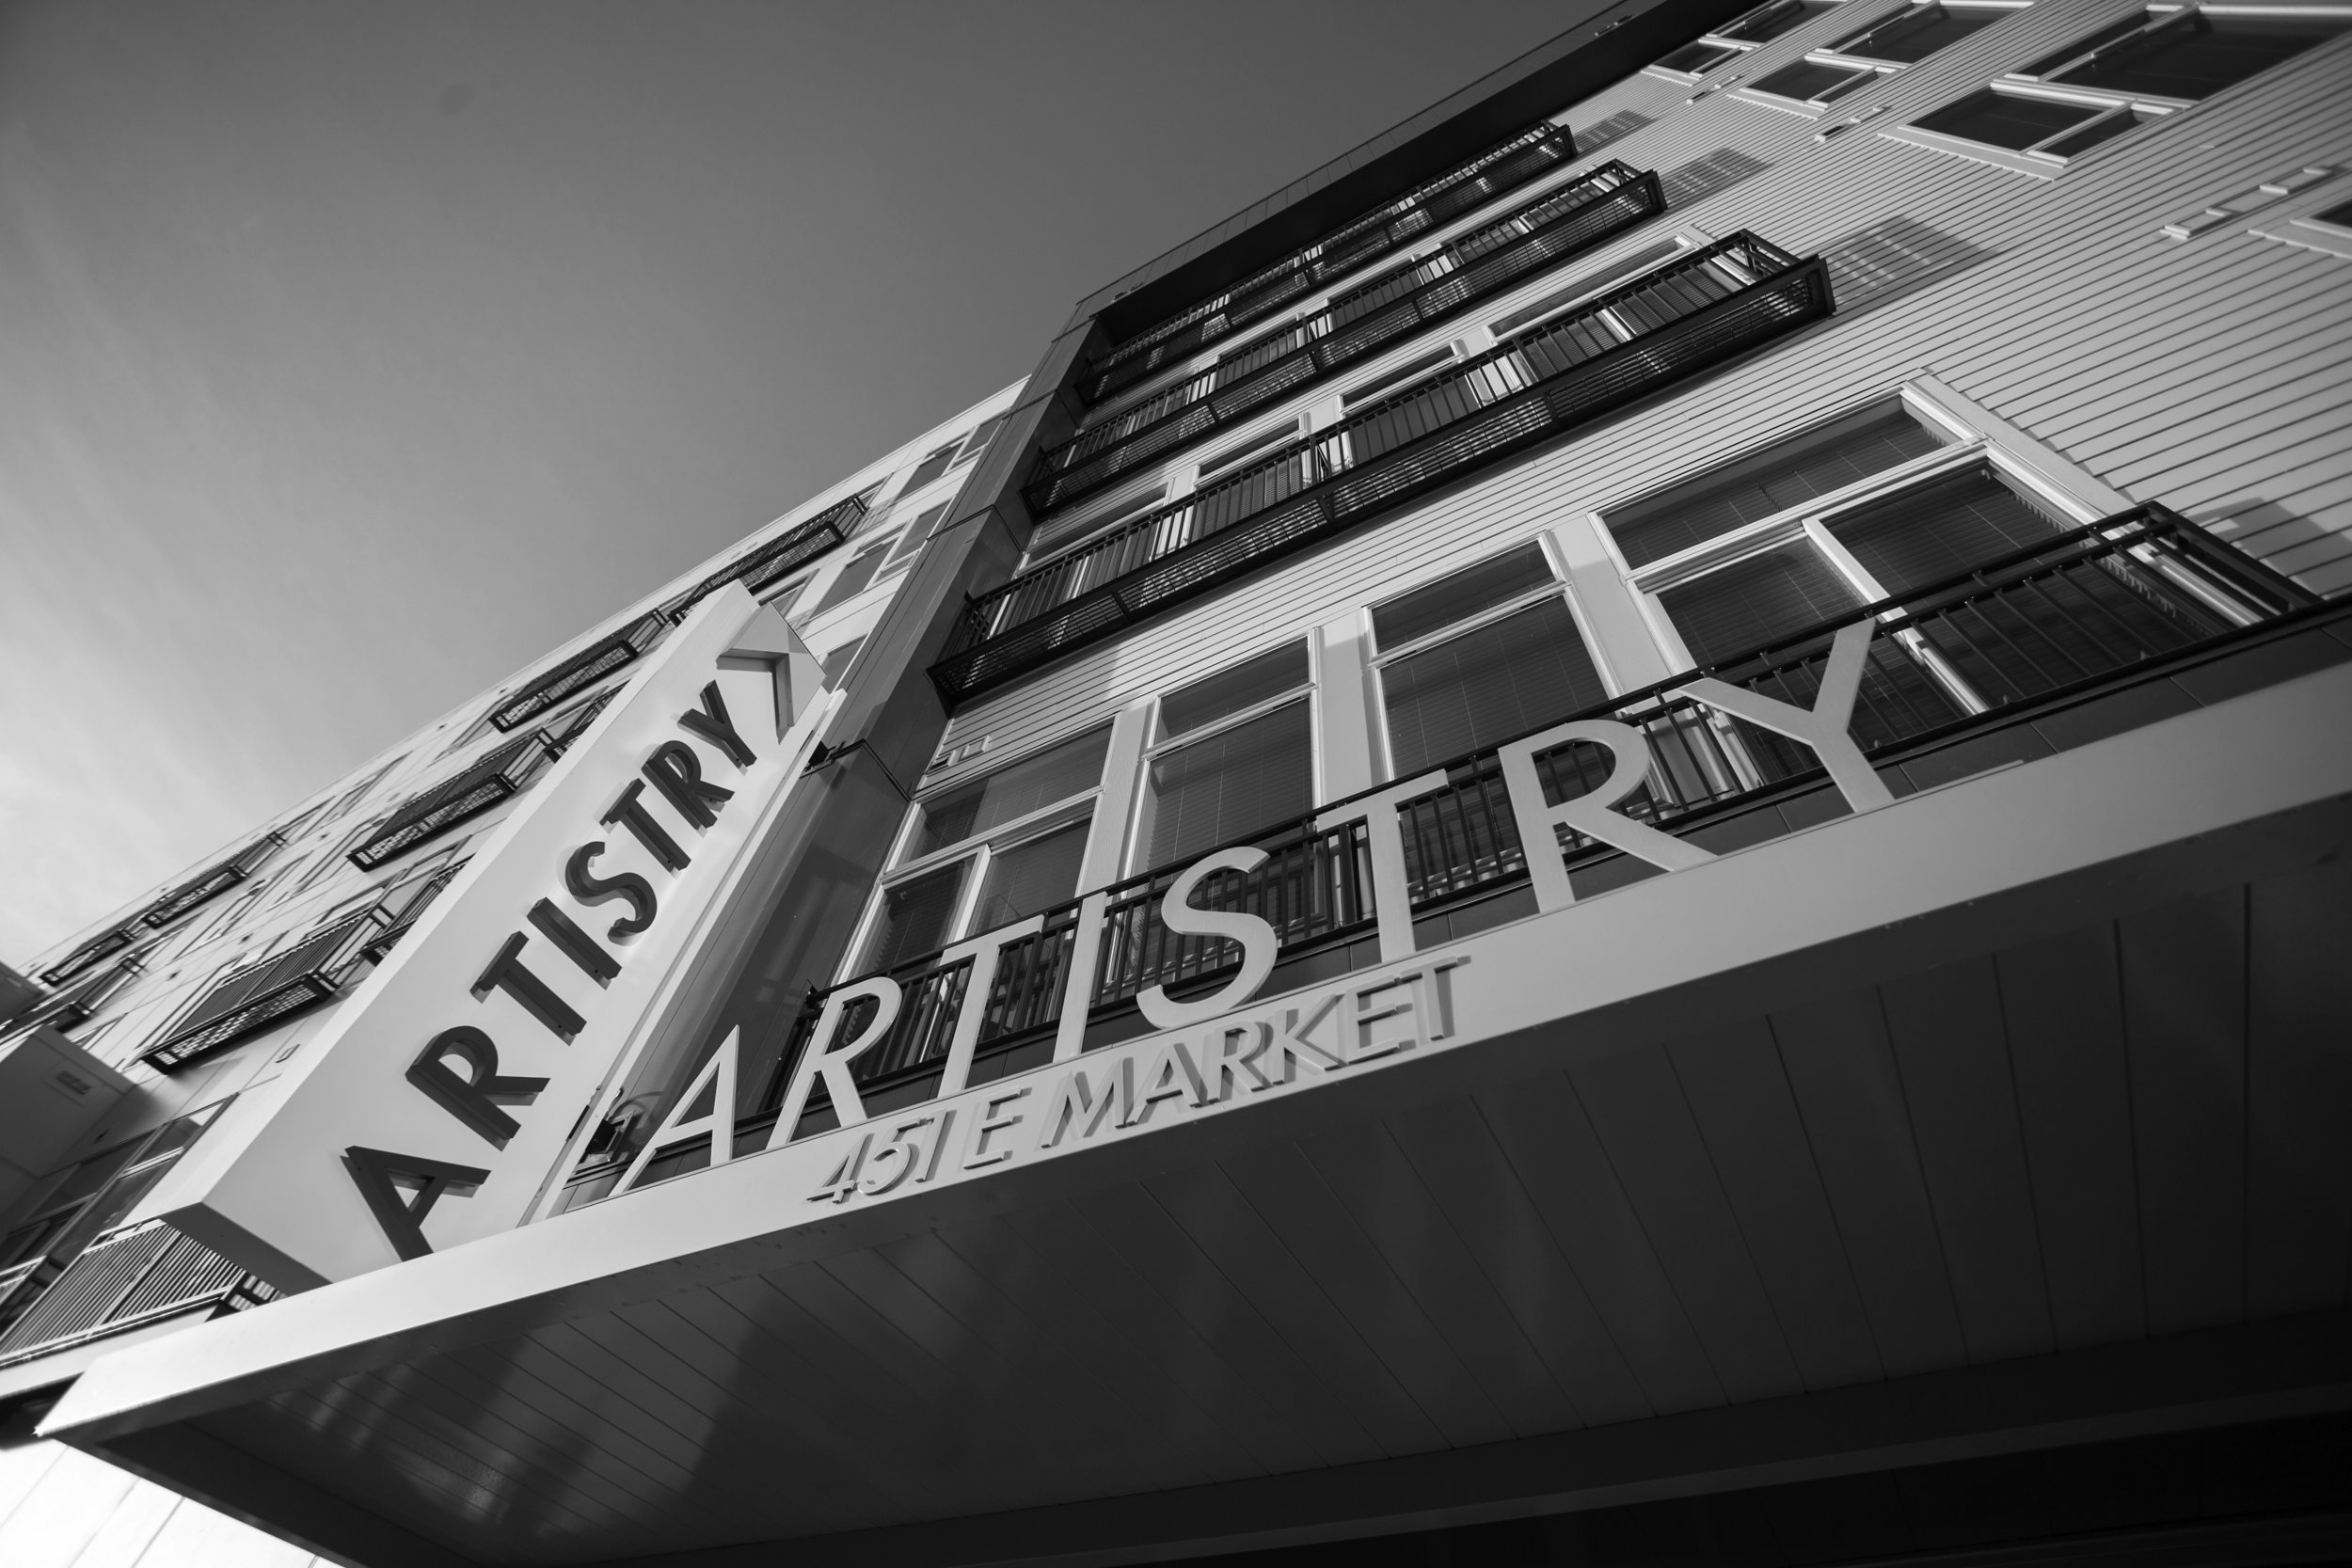 ARTISTRY APARTMENTS   Q7 conceptualized and created the Artistry brand that has now expanded nationally to other cities in the United States.  The residents experience local artists in an urban style space that features a permanent collection and rotating exhibitions .